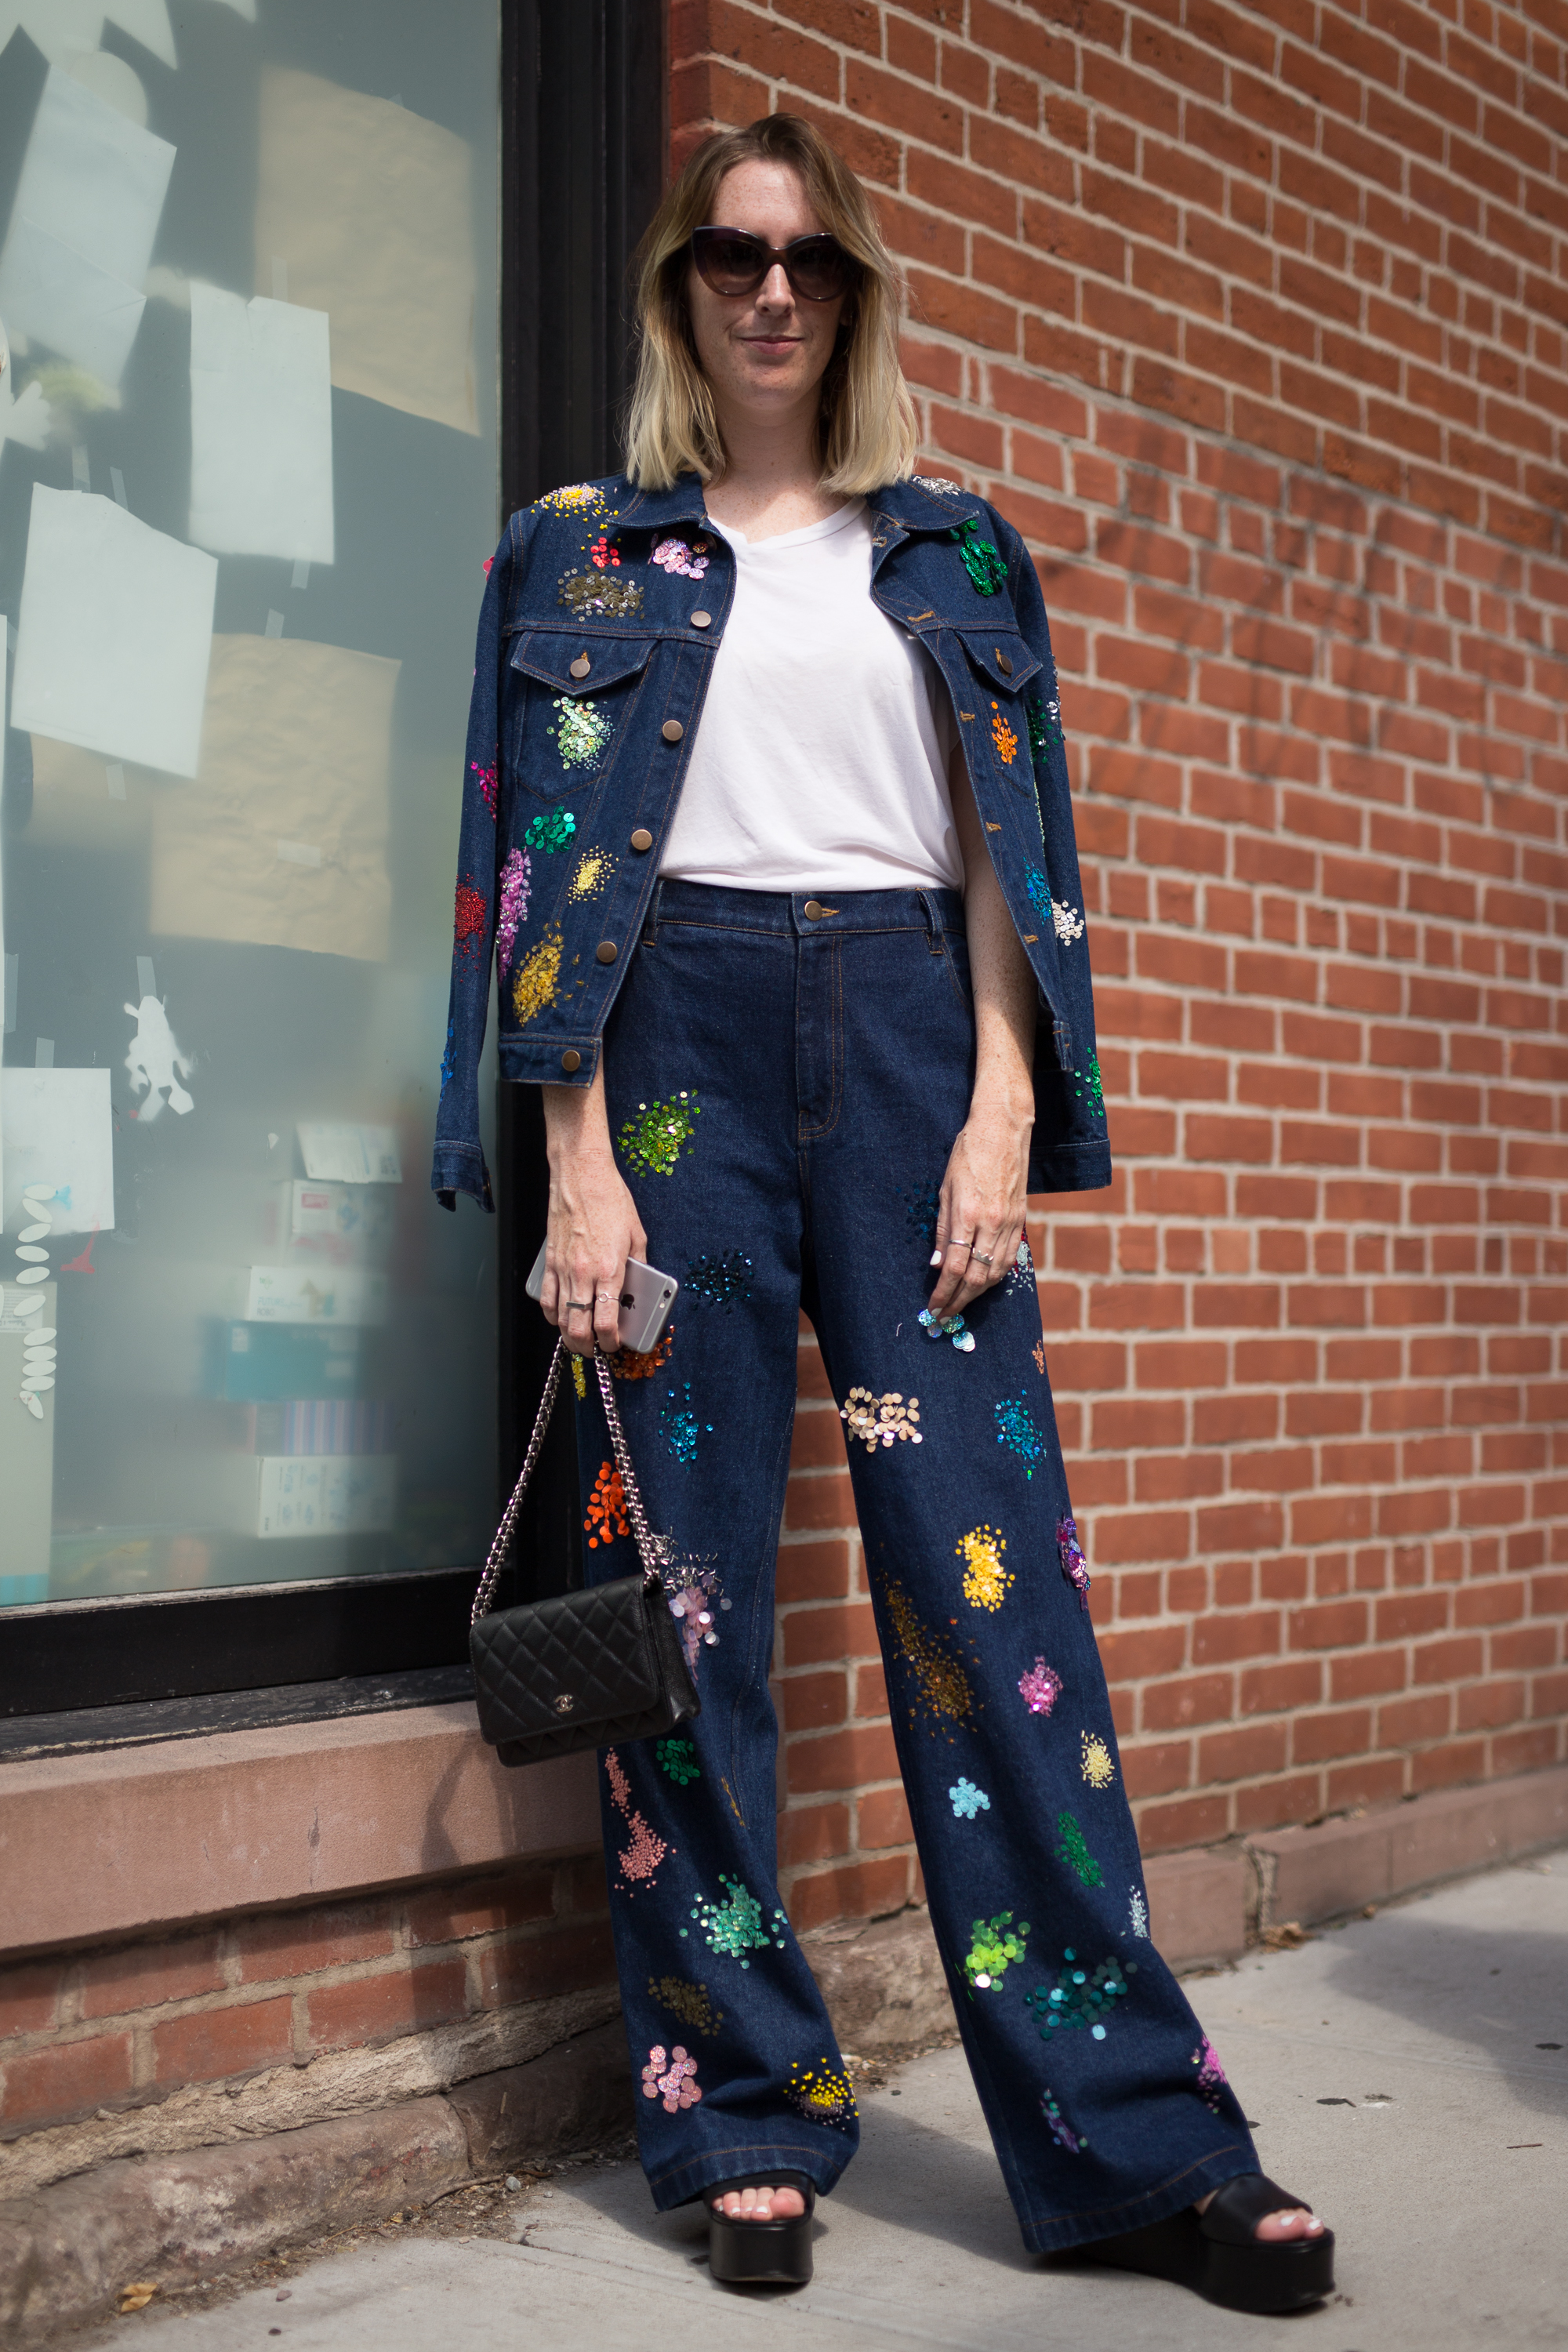 Sarah Owen's dark blue Canadian tuxedo got a playful update with colorful splashes of  paint  embellishment.